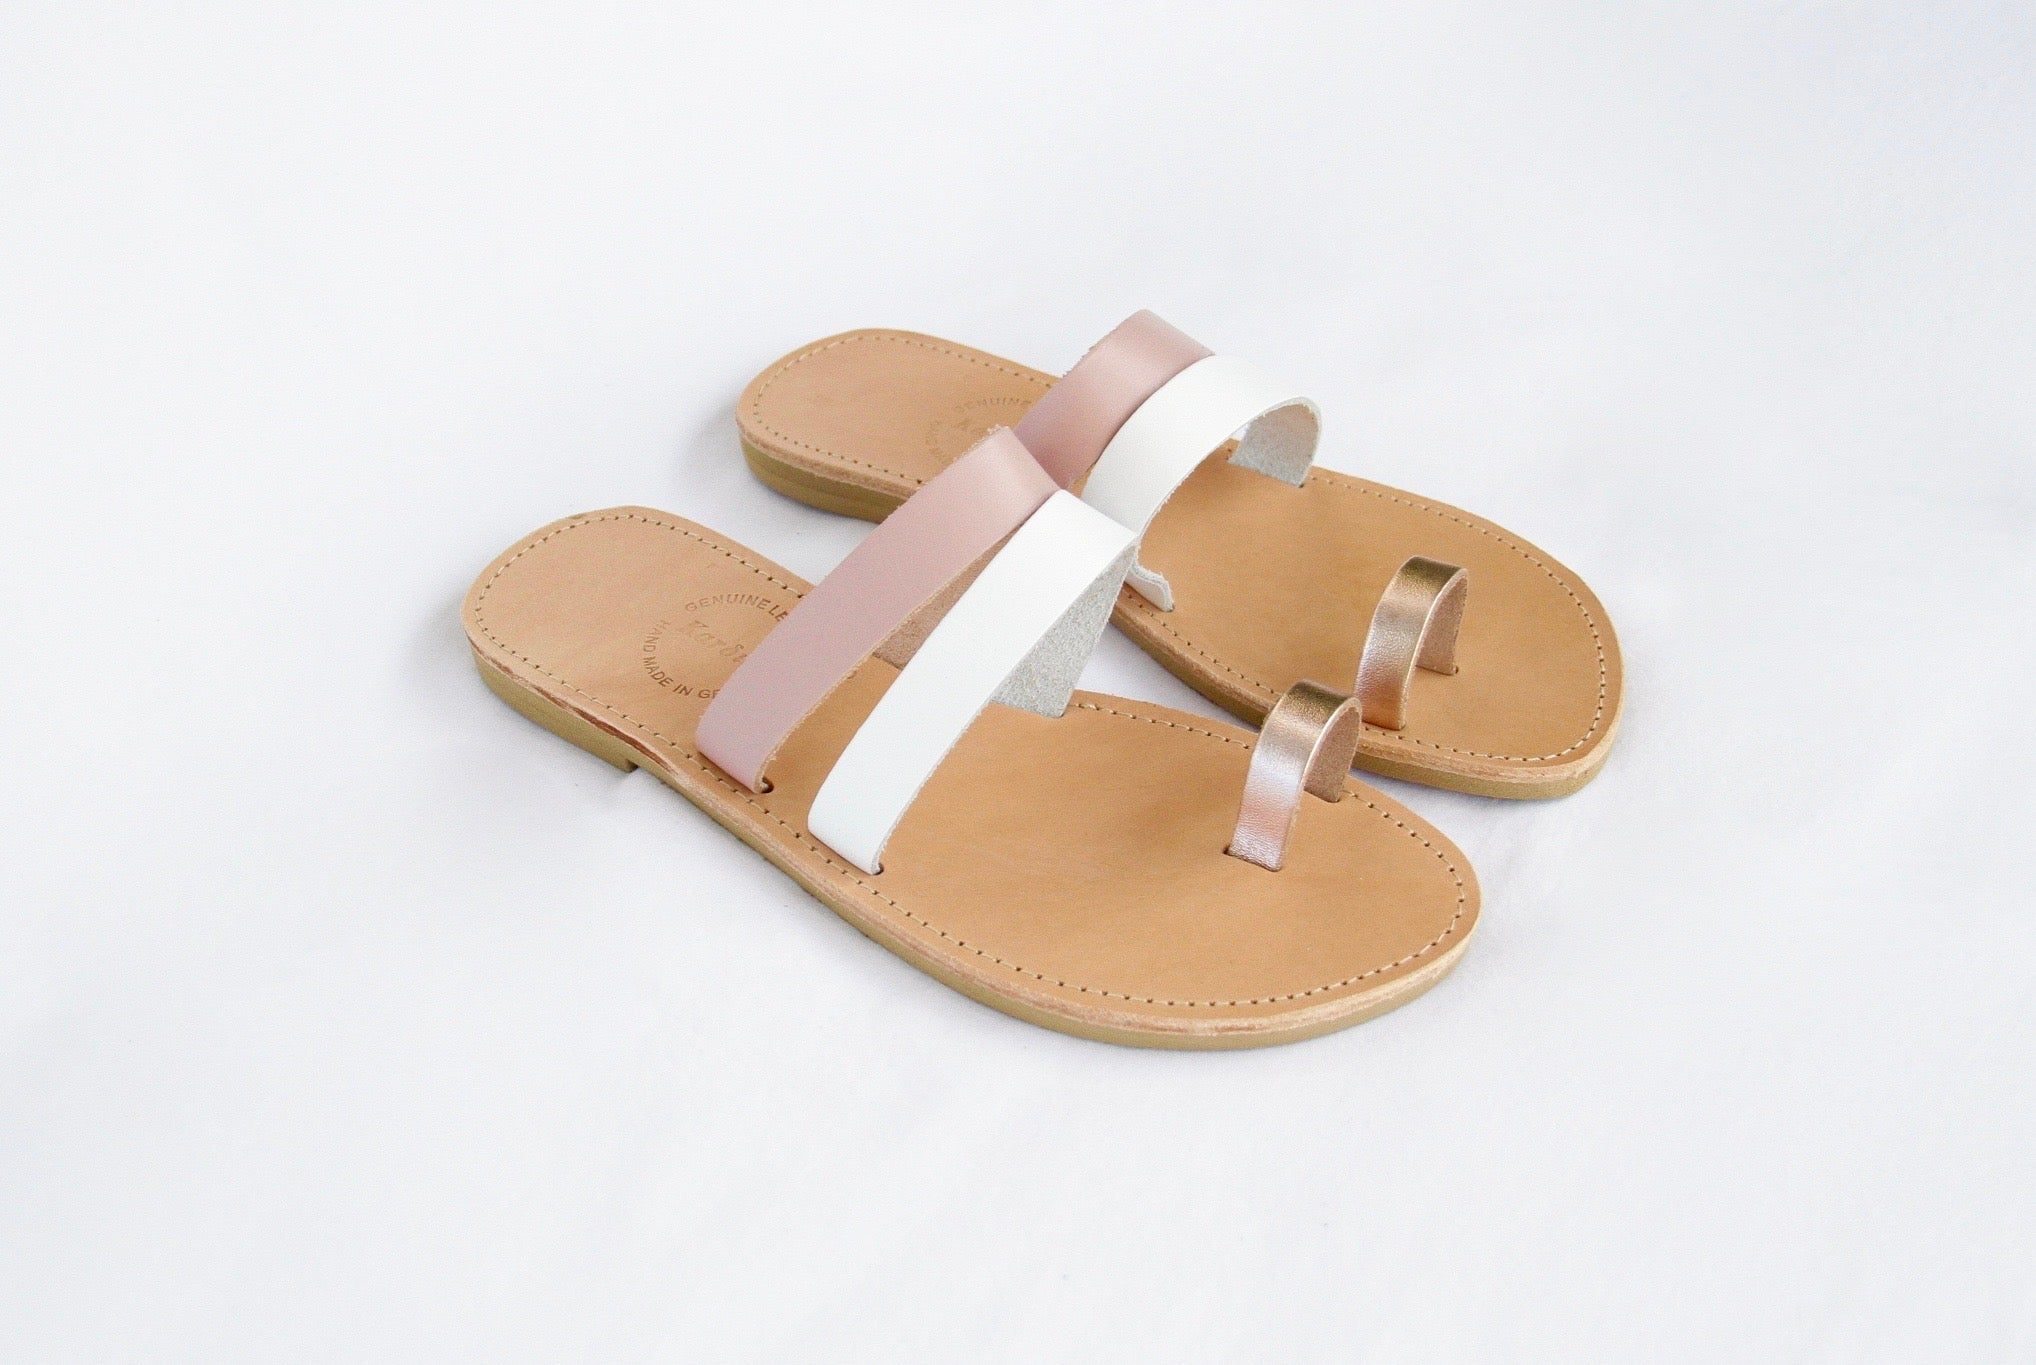 Sophia Sandals in Nude, White and Rose Gold Leathers - Kardia